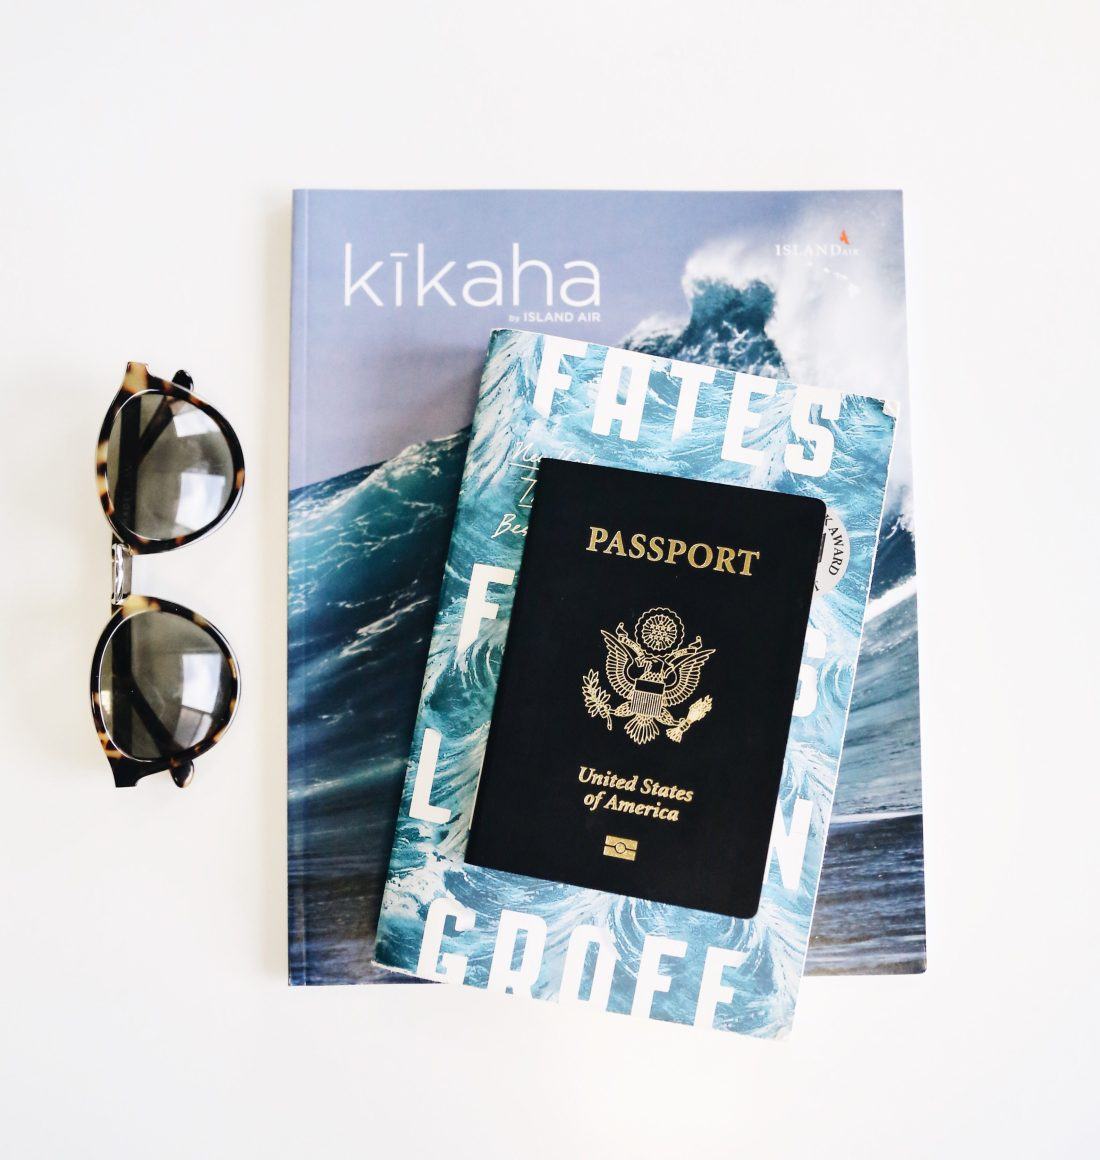 Travel Guide to Kauai, Hawaii | Flying with Island Air | Hawaii Flights | Travel Tips for Kauai | Packing List for Kauai | Helpful Tips for Traveling to Kauai | Kauai Travel Guide | Hawaii Travel Guide | Why You Should Visit Hawaii | Napali Coast Boat Excursion | Activities To Do in Kauai | Best Vacation Places in the World via @elanaloo + elanaloo.com